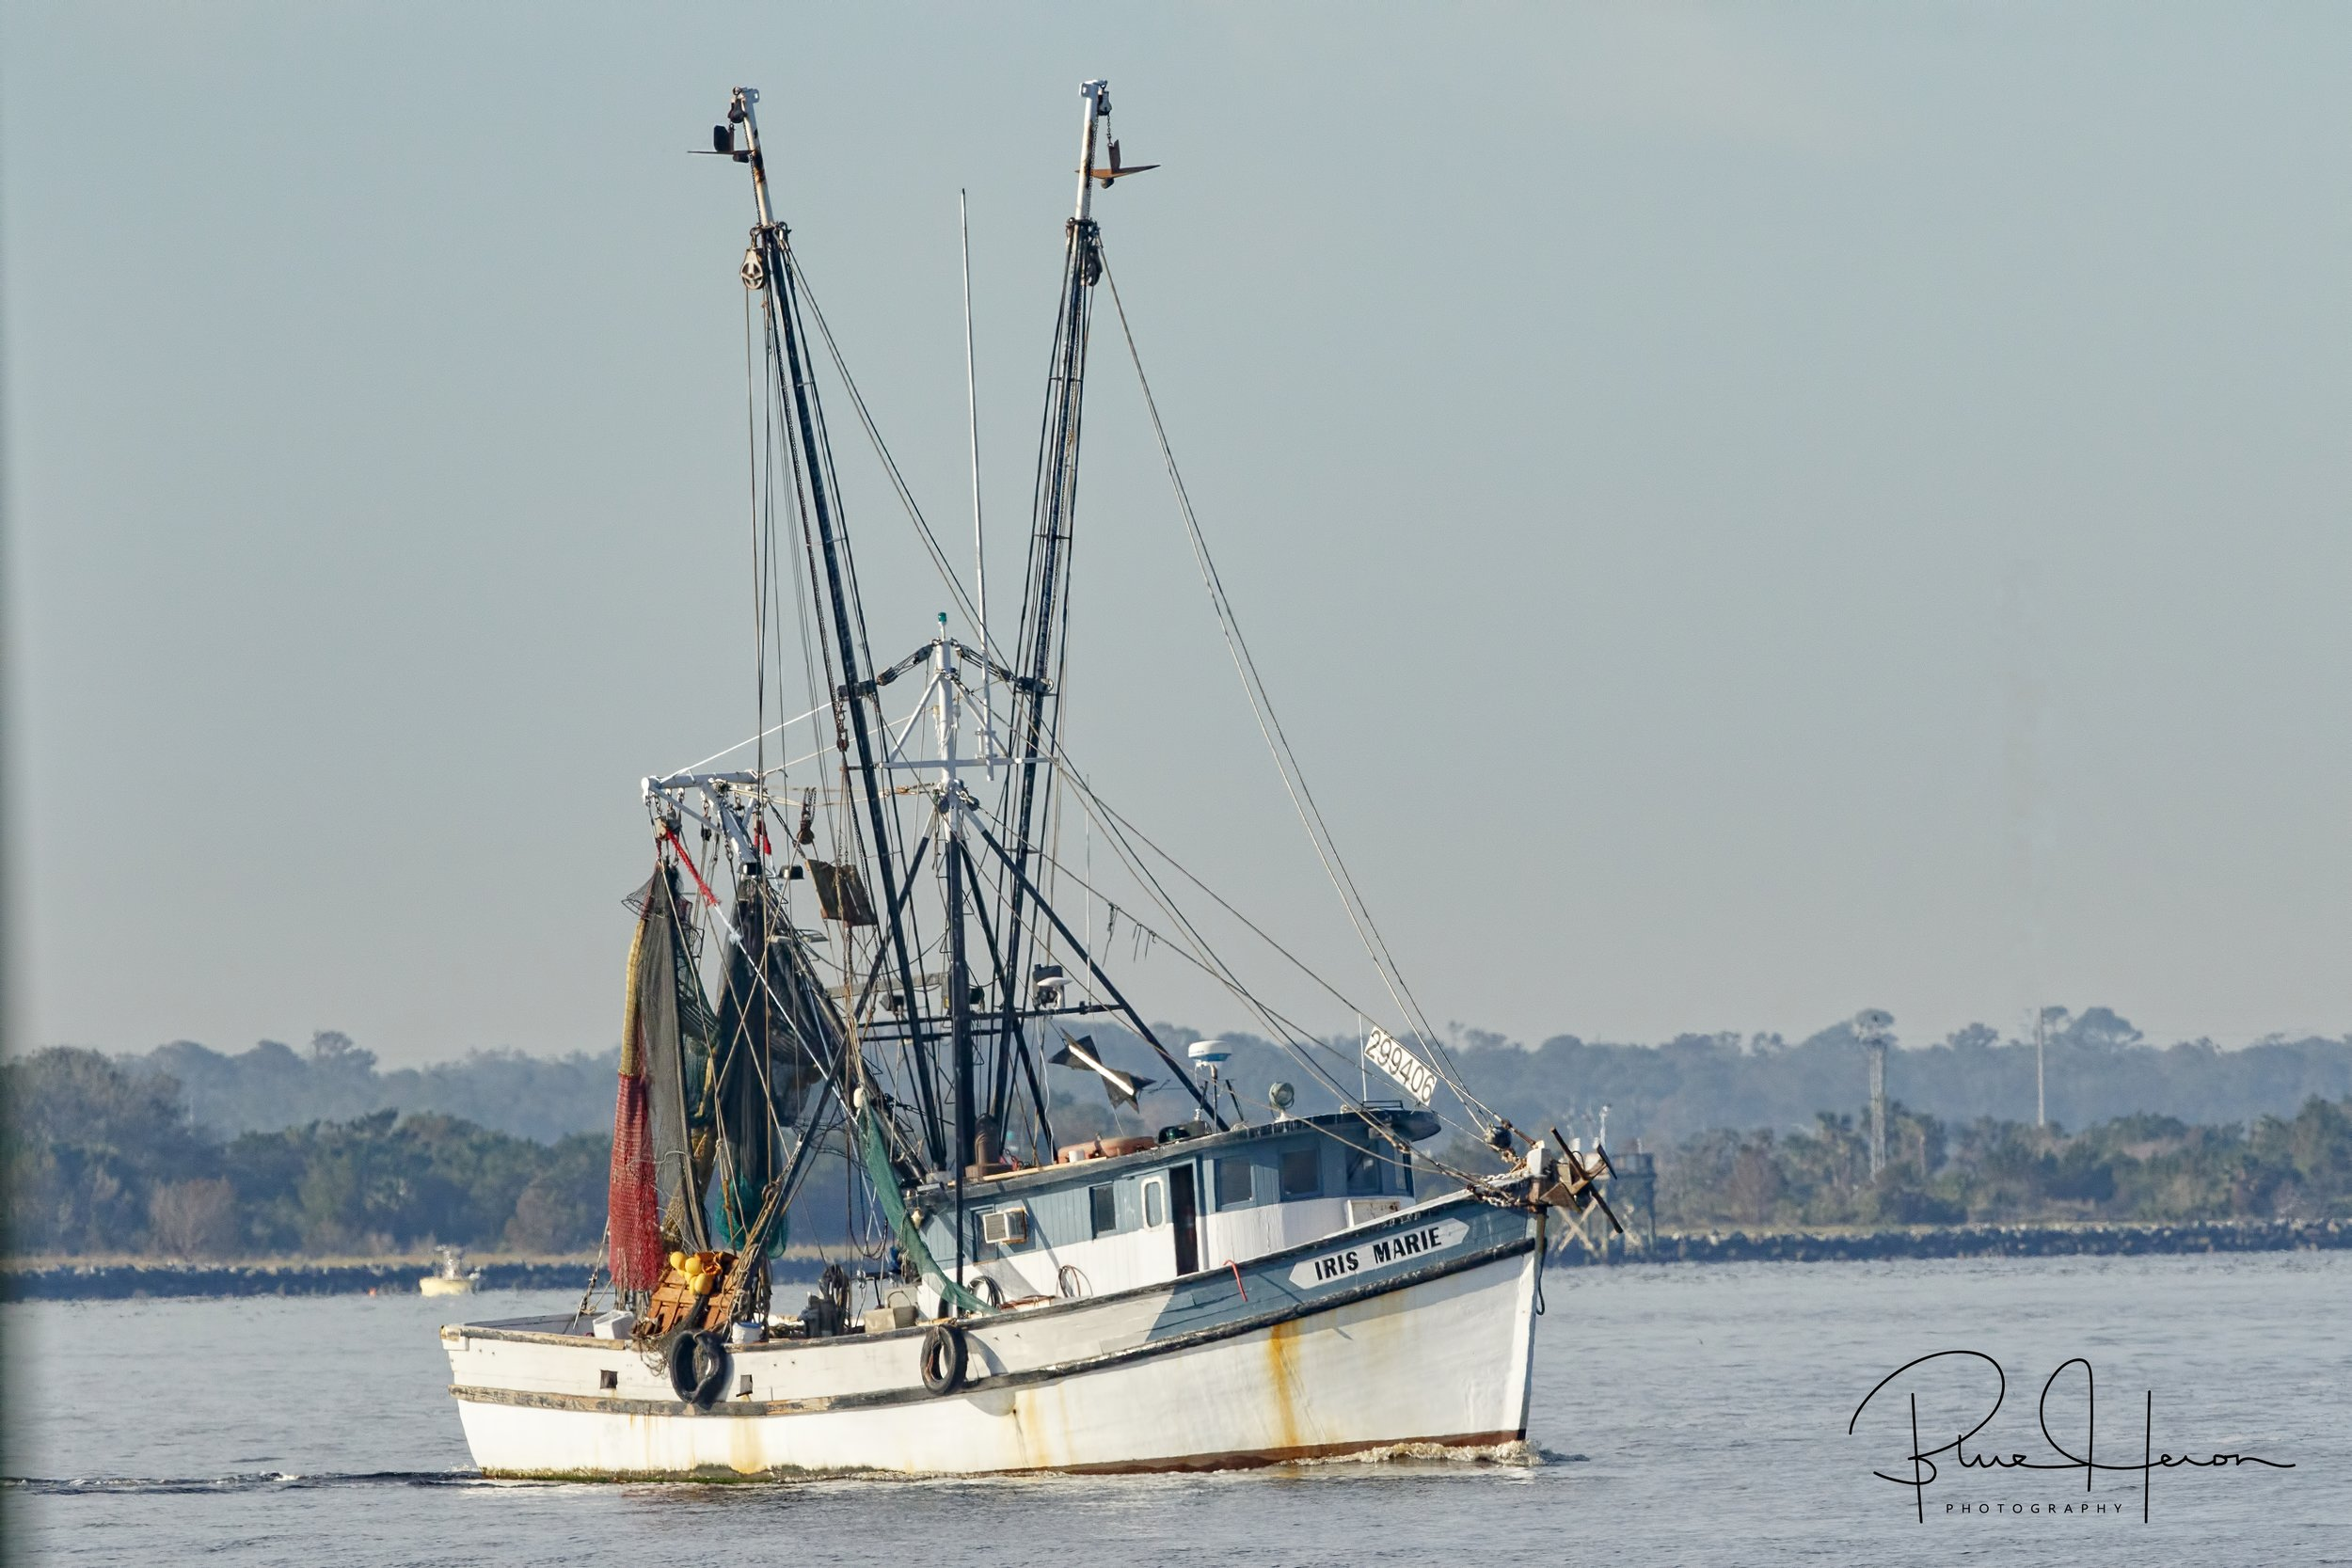 A local Mayport Shrimp boat heads out to sea also..